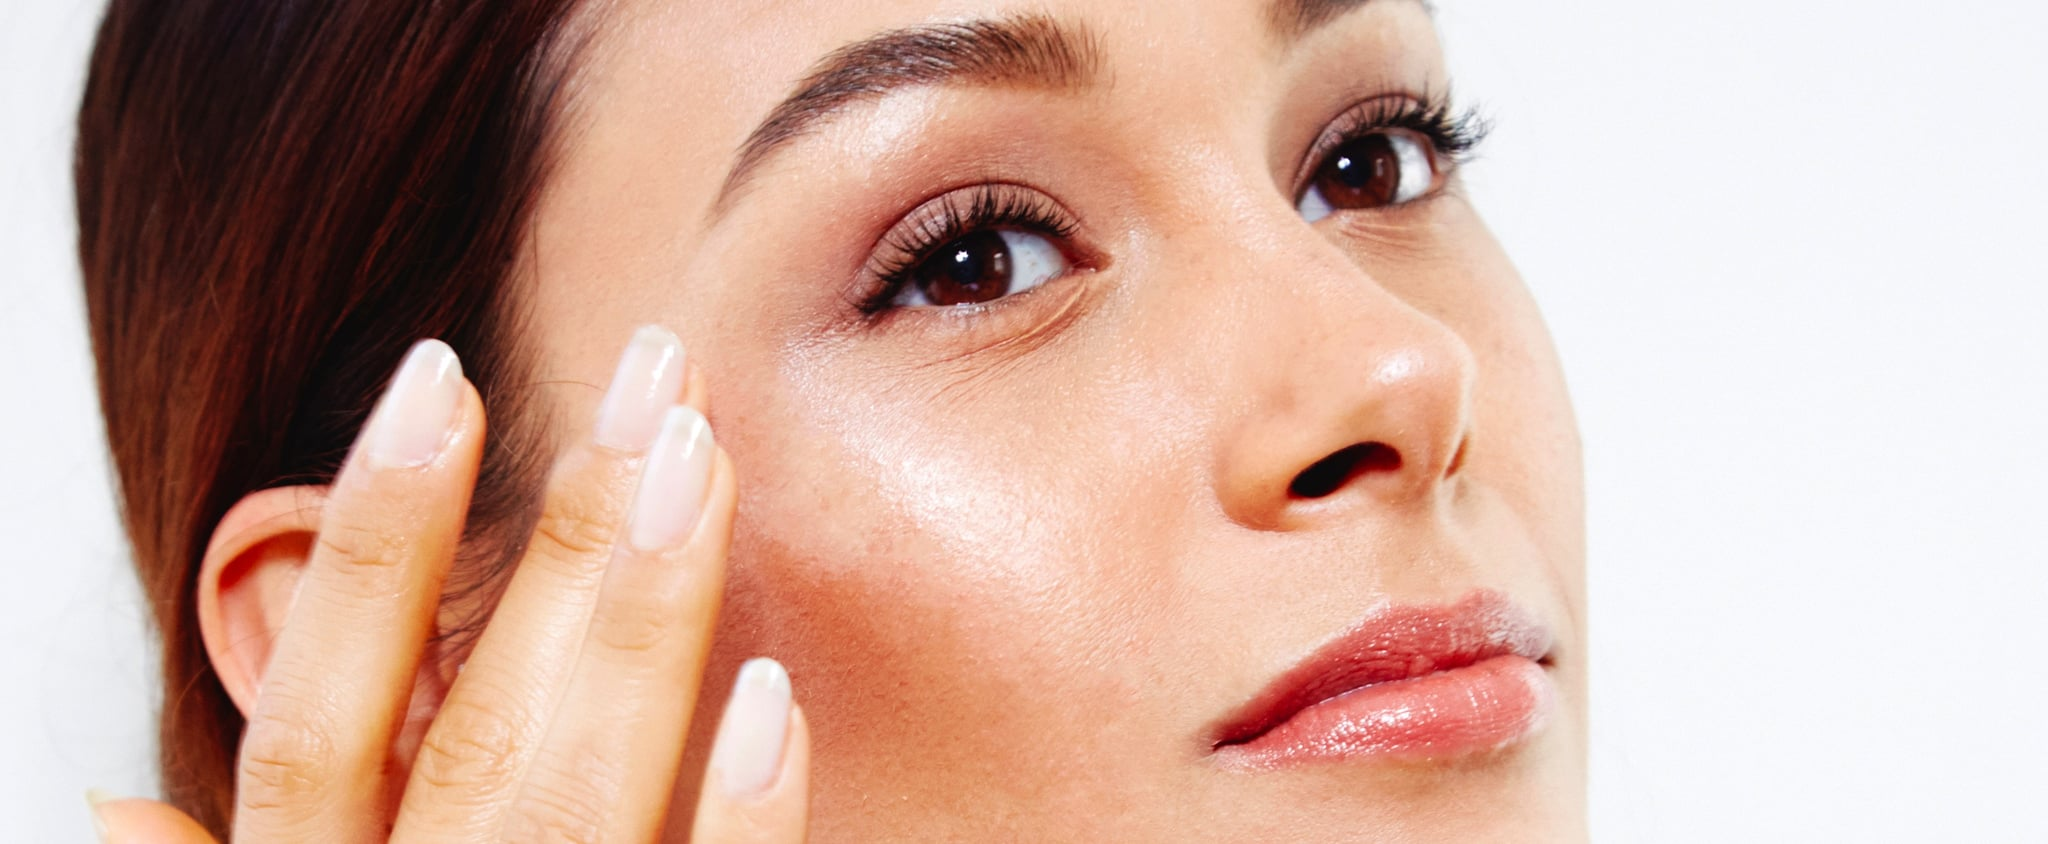 Beauty Products to Use in Your 30s